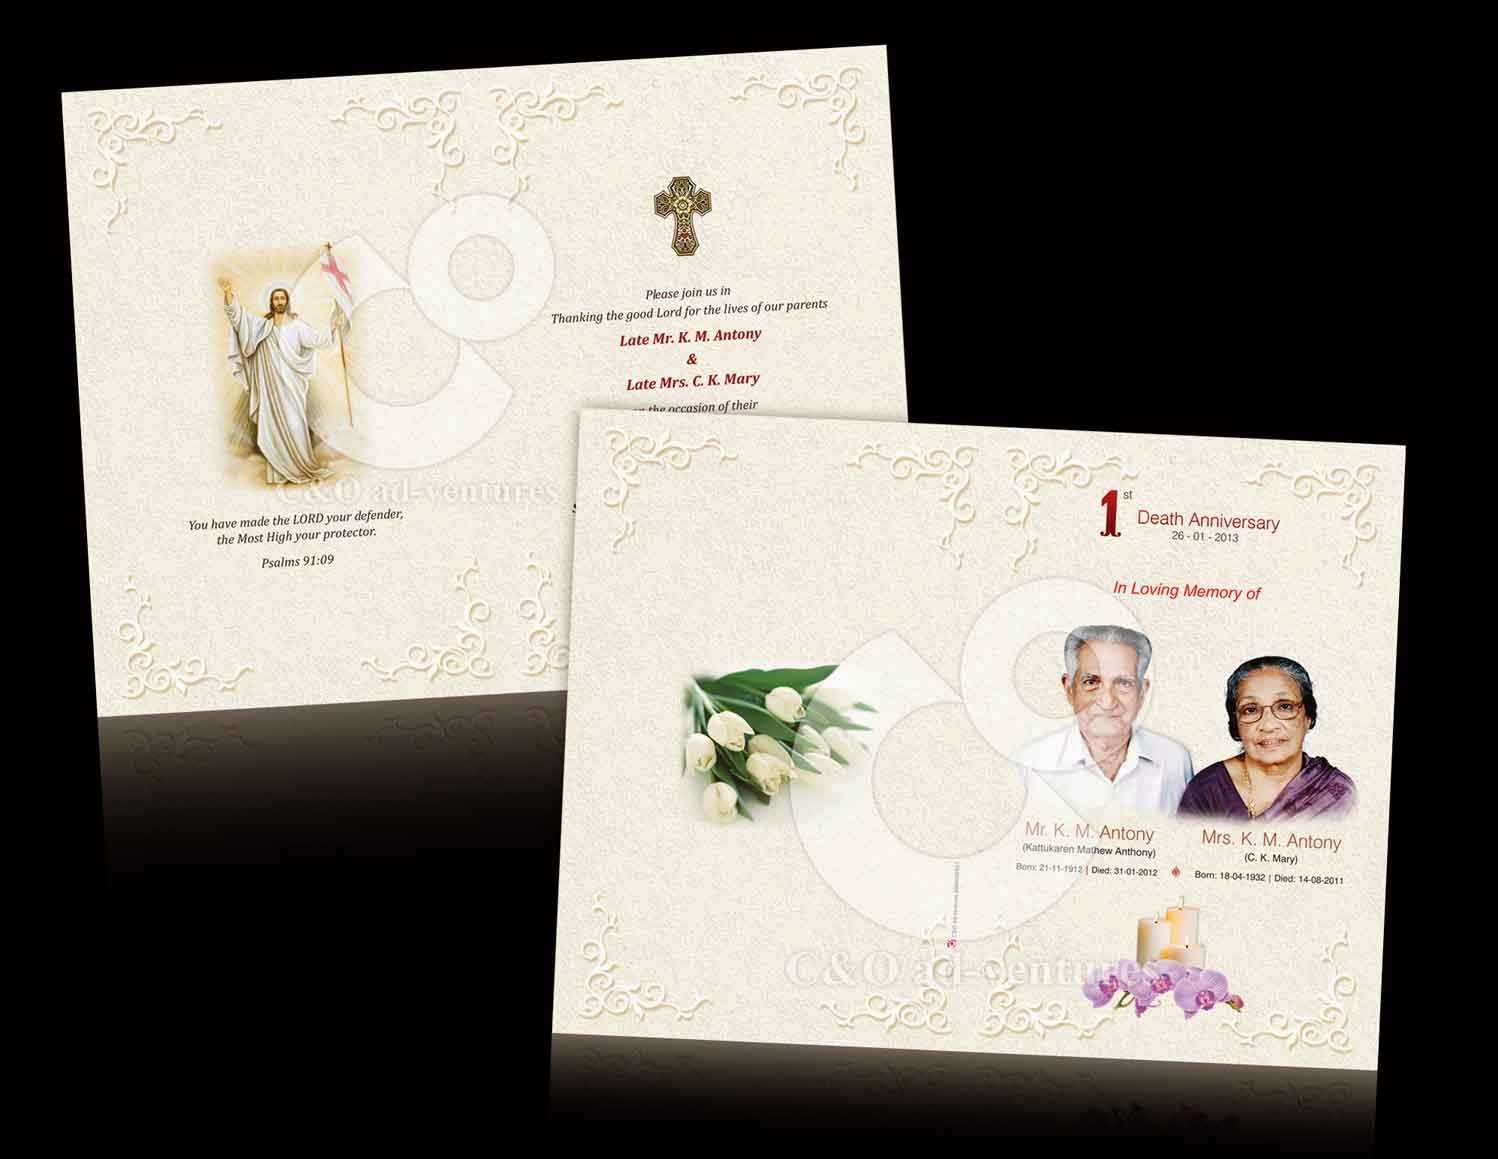 Death Anniversary Cards Templates ] - Card Templates Free Pertaining To Death Anniversary Cards Templates